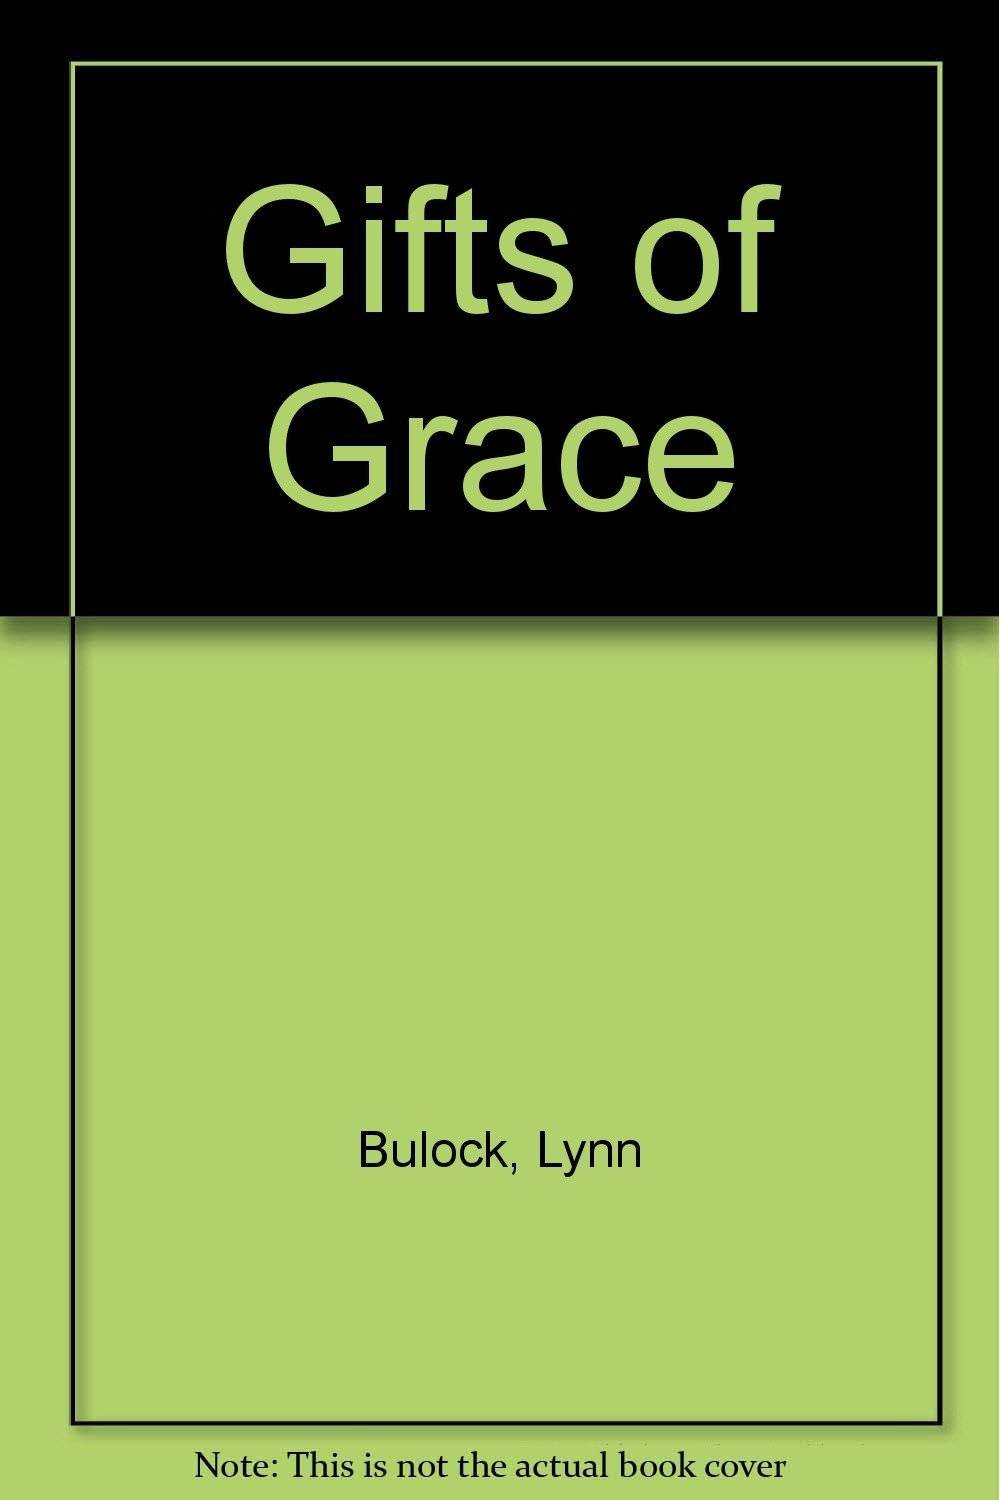 Gifts of Grace by Bulock, Lynn